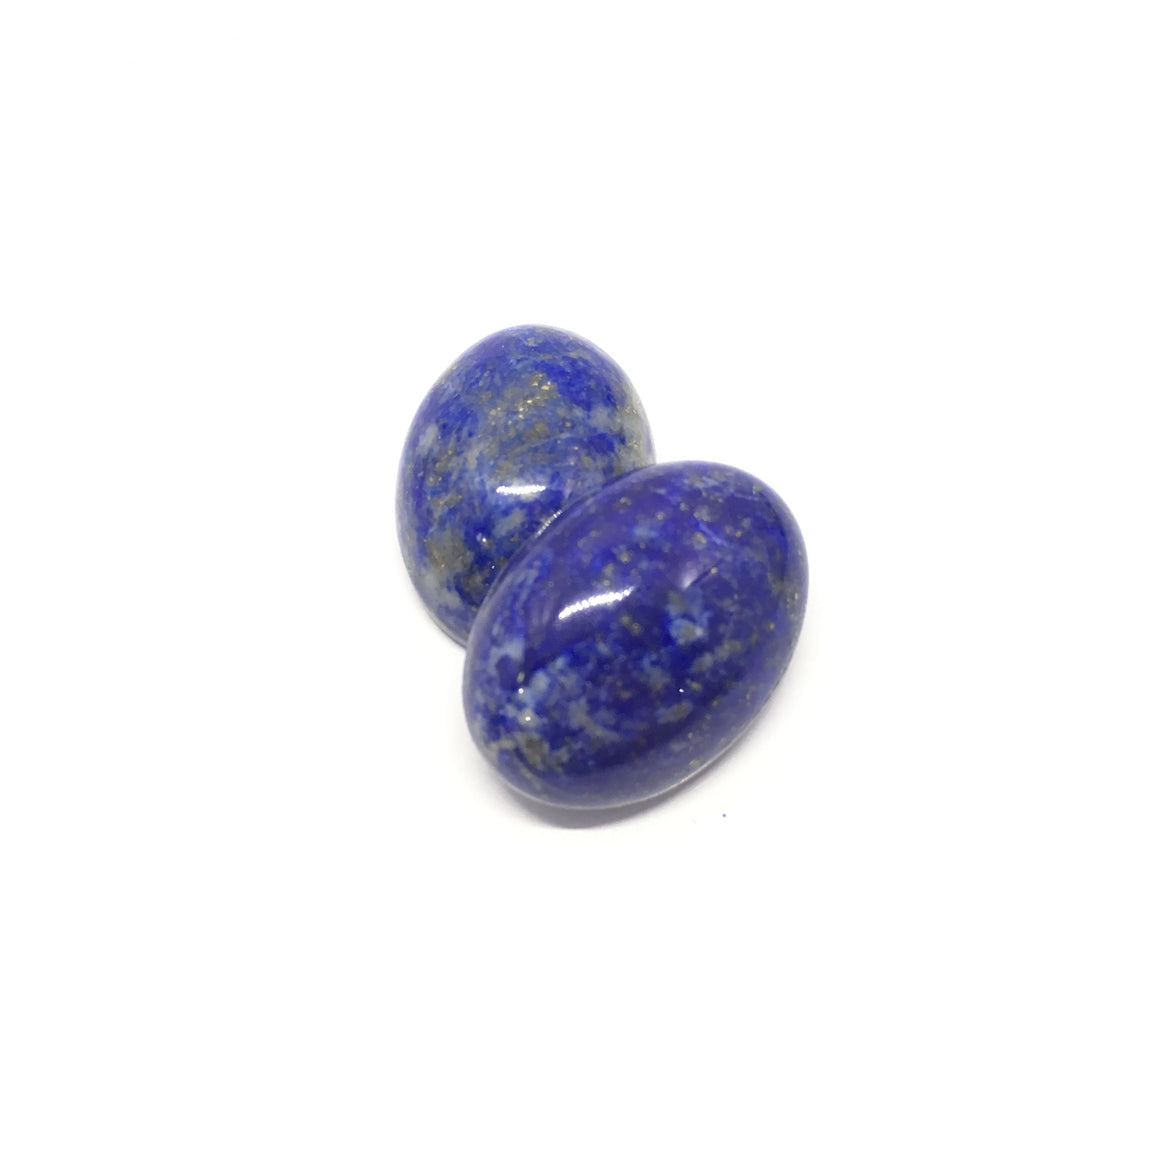 Lapis Lazuli Cabochon - Lapis Cabochon For Ring Oval Cut - 46.50 Carat